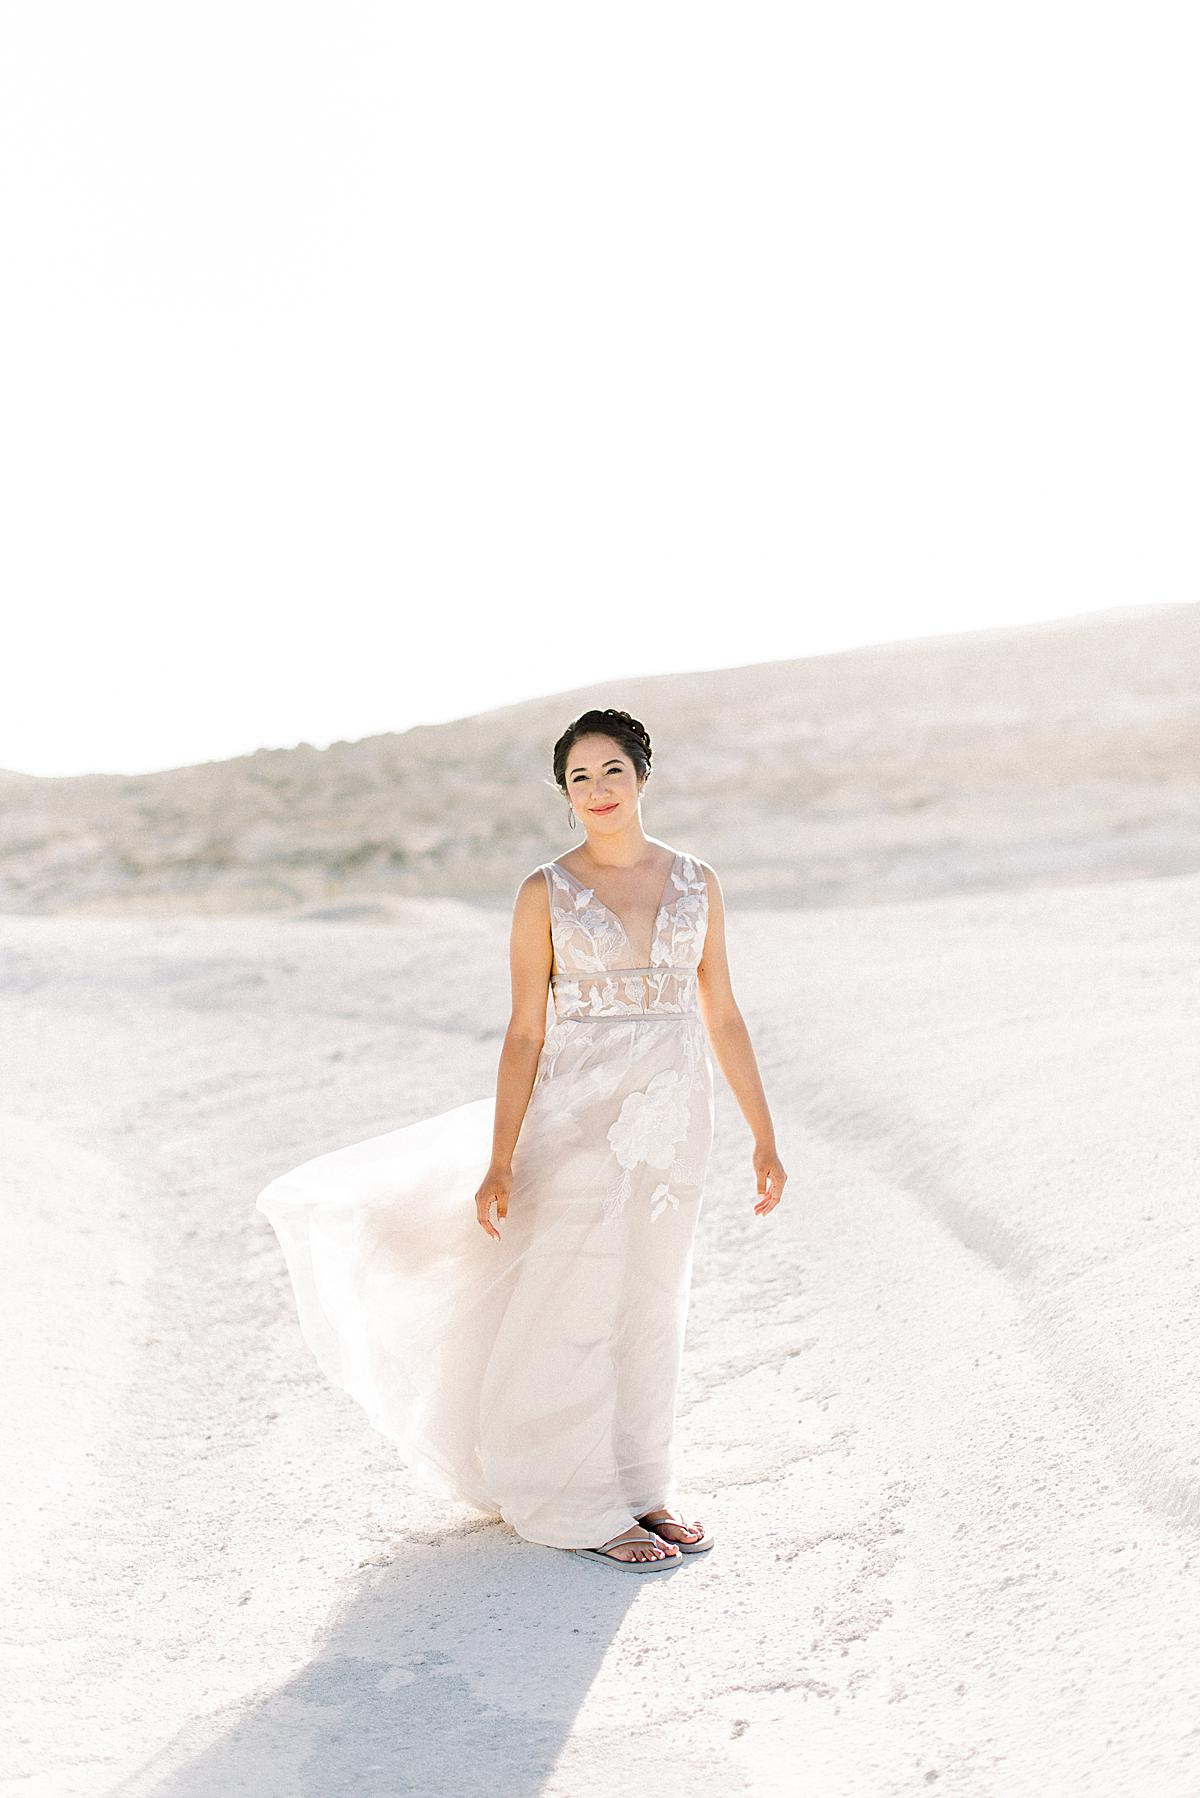 Bride during her first look session in Milos island Greece